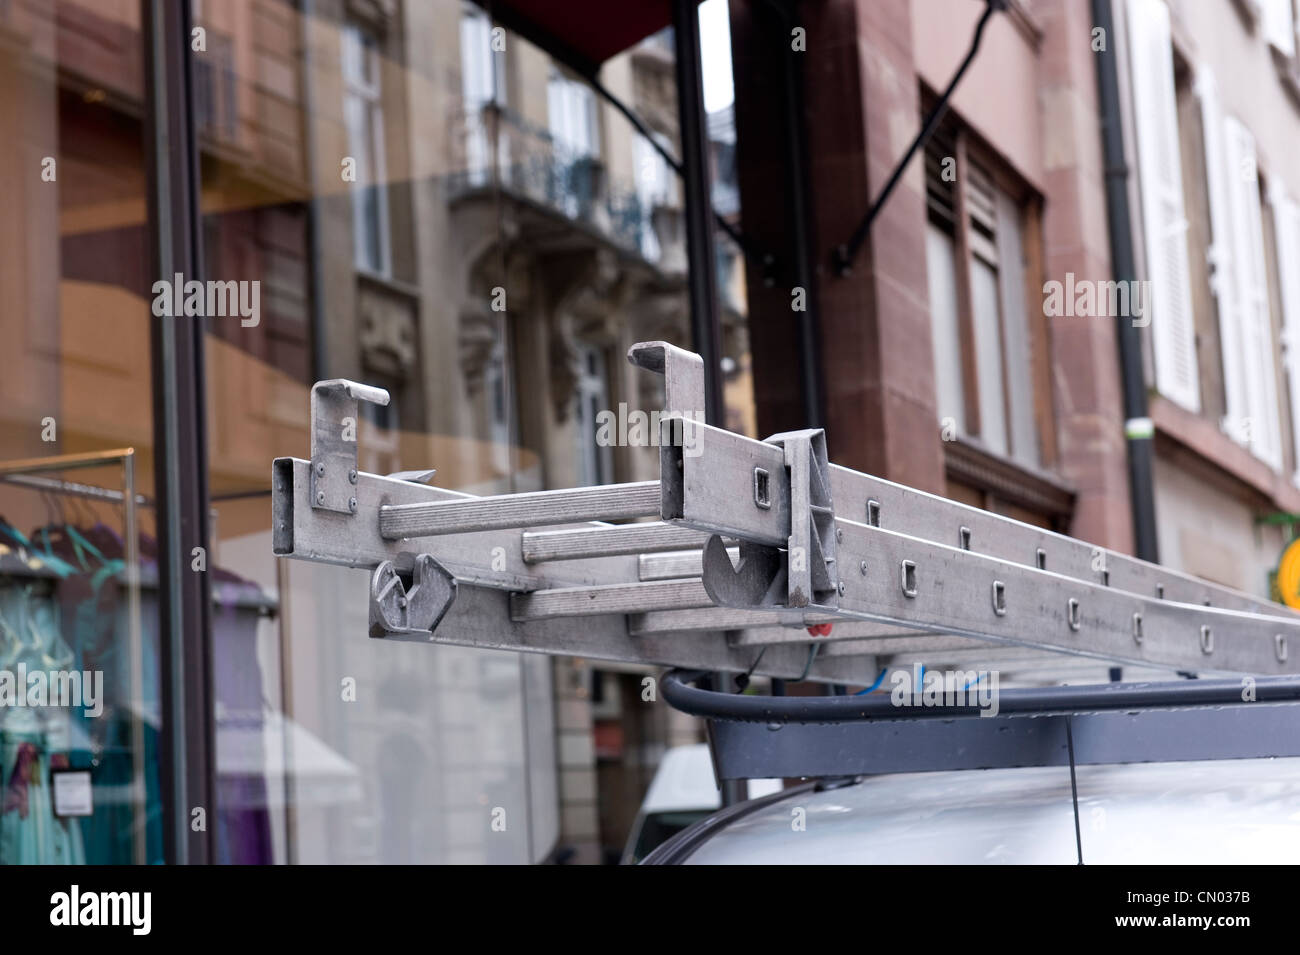 A commercial ladder on a white van. Stock Photo